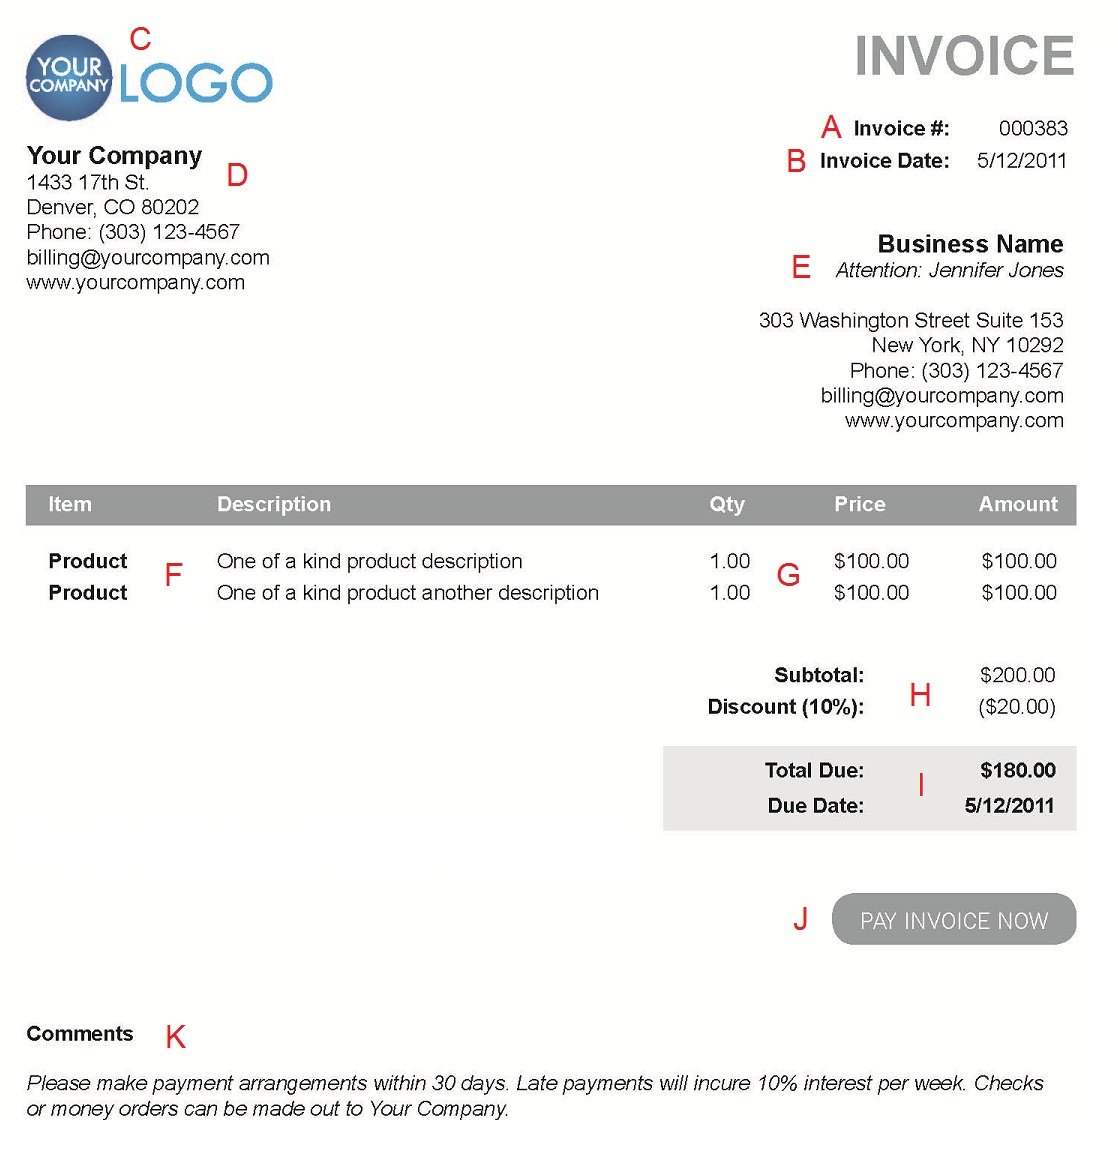 Angkajituus  Unique The  Different Sections Of An Electronic Payment Invoice With Fair A  With Adorable Proforma Invoice Meaning Also Pest Control Invoice Template In Addition Invoice App For Iphone And What Is An Invoice On Paypal As Well As Formal Invoice Additionally Html Invoice From Paysimplecom With Angkajituus  Fair The  Different Sections Of An Electronic Payment Invoice With Adorable A  And Unique Proforma Invoice Meaning Also Pest Control Invoice Template In Addition Invoice App For Iphone From Paysimplecom